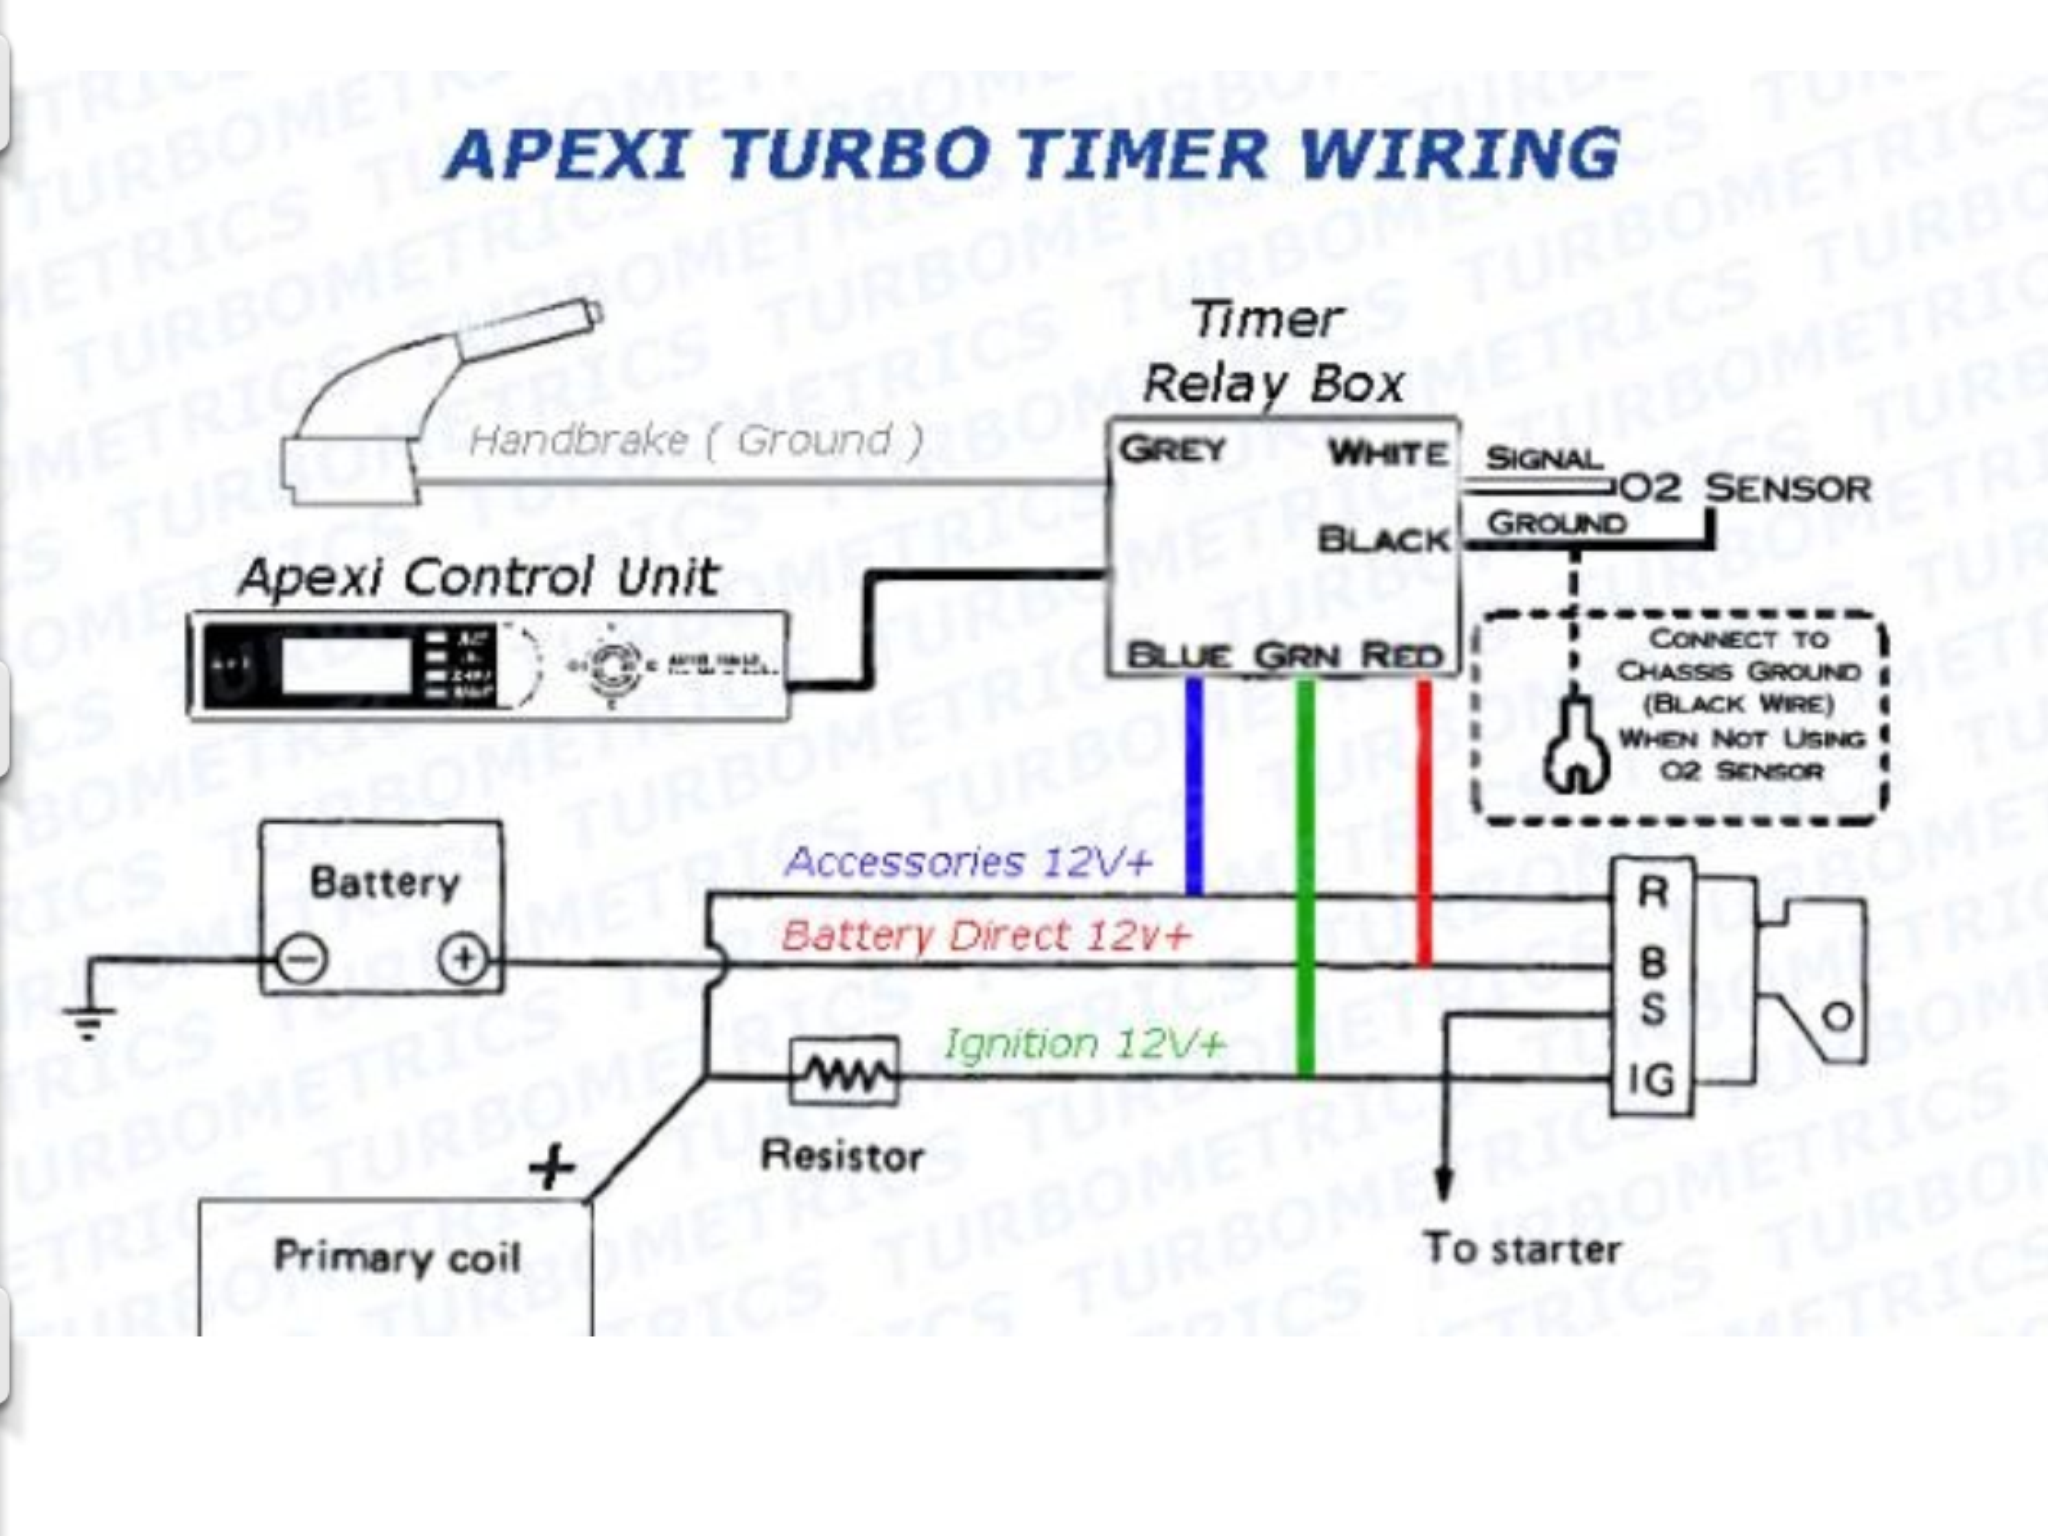 DIAGRAM] Ford Turbo Wiring Diagram FULL Version HD Quality Wiring Diagram -  DIAGRAMRT.HOSTERIA87.IT | Turbo Timer Wiring Diagram |  | Diagram Database